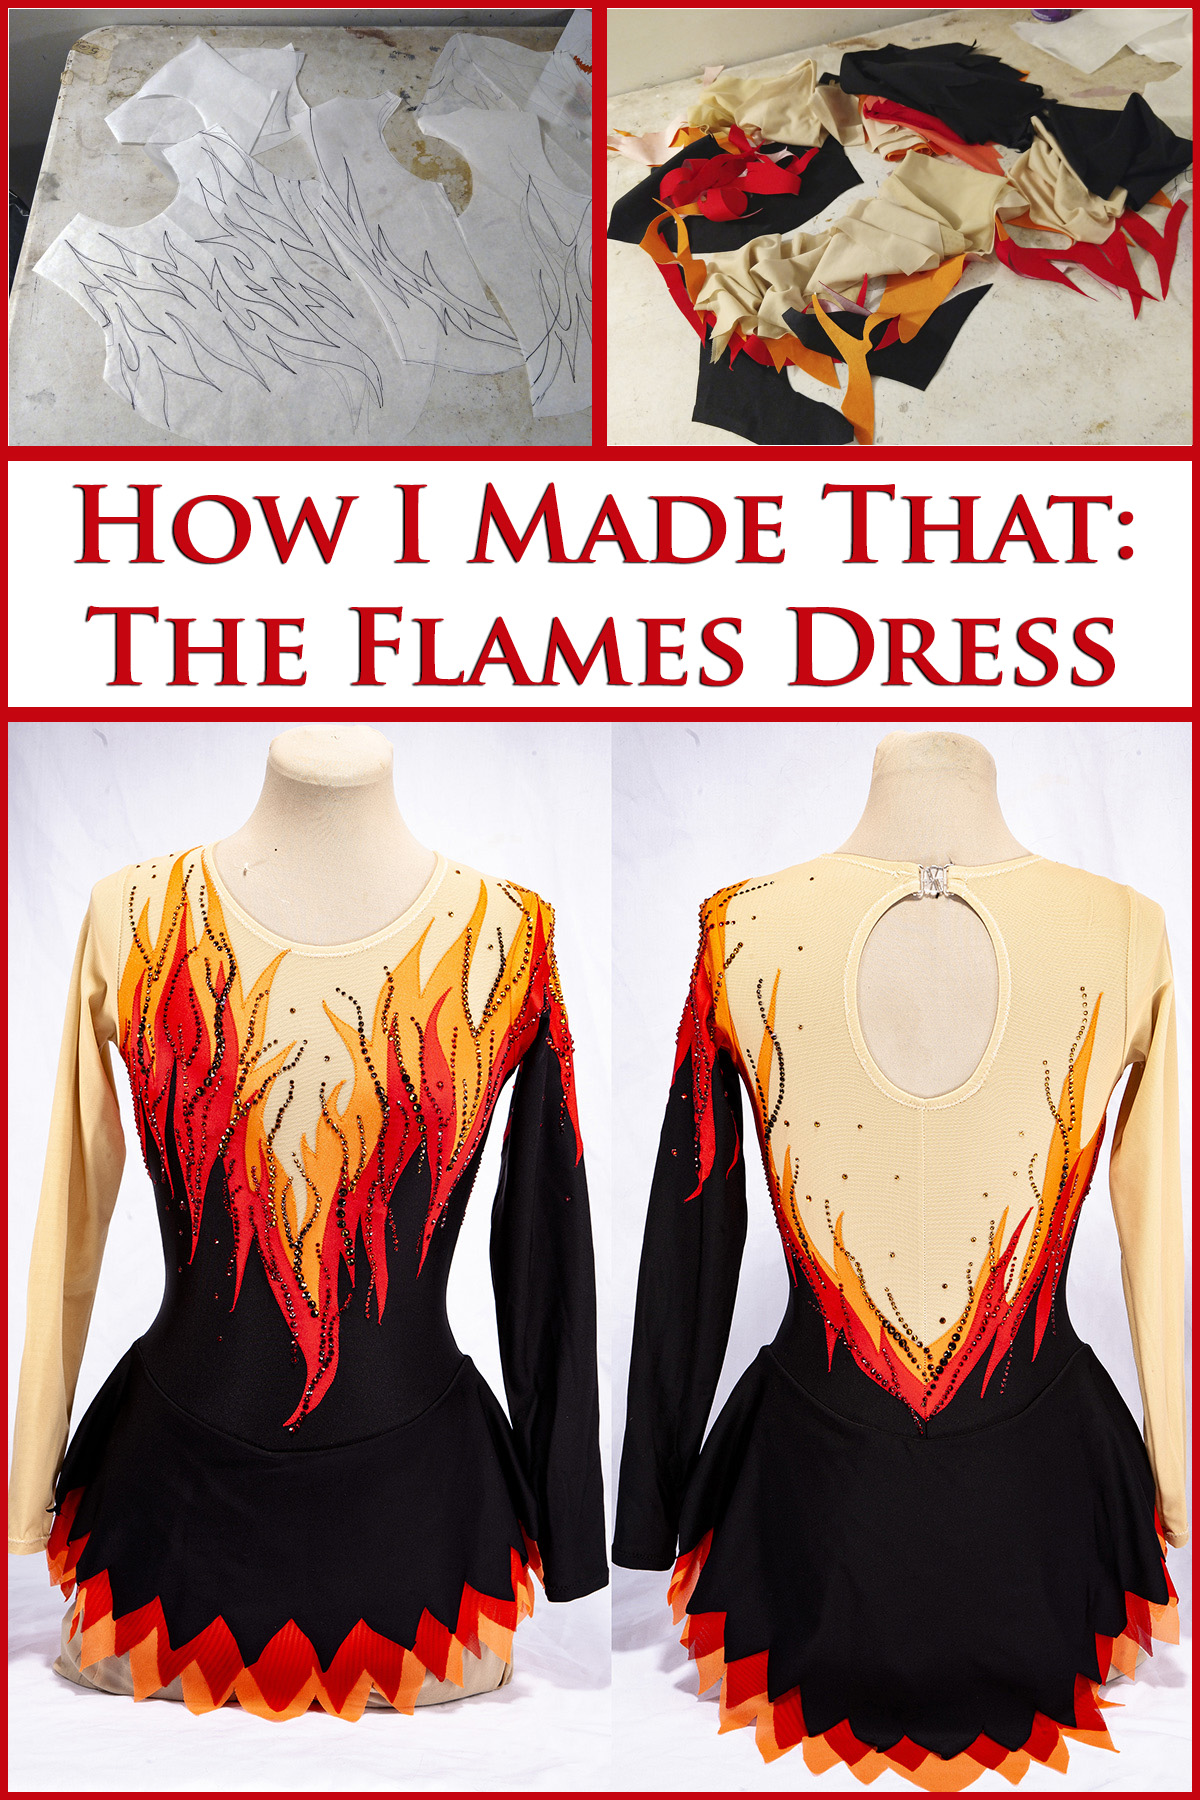 A 2 part compilation image showing front and back views of the flames skating dress. The main body is black, one sleeve and the shoulders, upper chest, and one sleeve is beige, and a bright red and orange flames design separates the beige and black areas. In this version, the dress has been heavily crystalled.  Red text says How I made that: The flames dress.